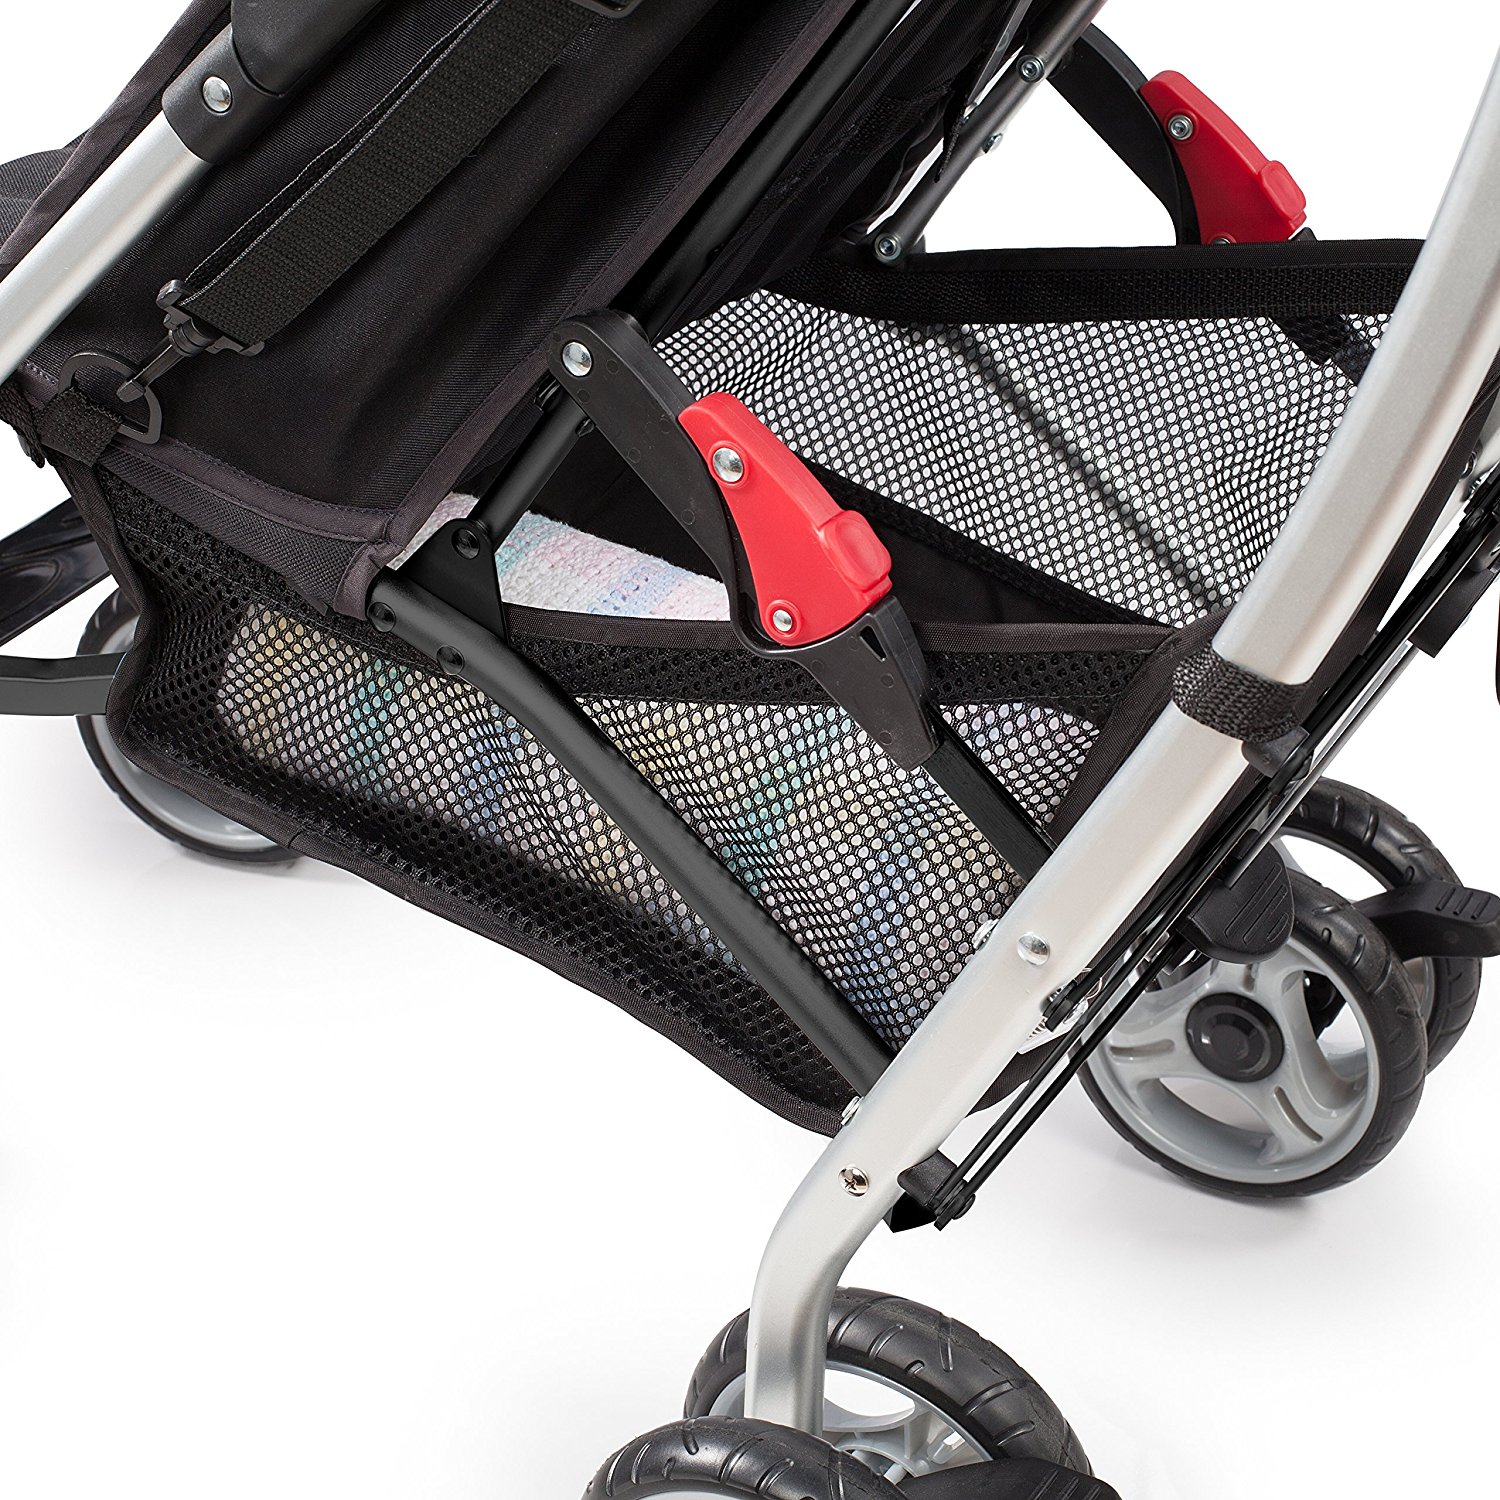 Newborn Umbrella Stroller Best Umbrella Stroller